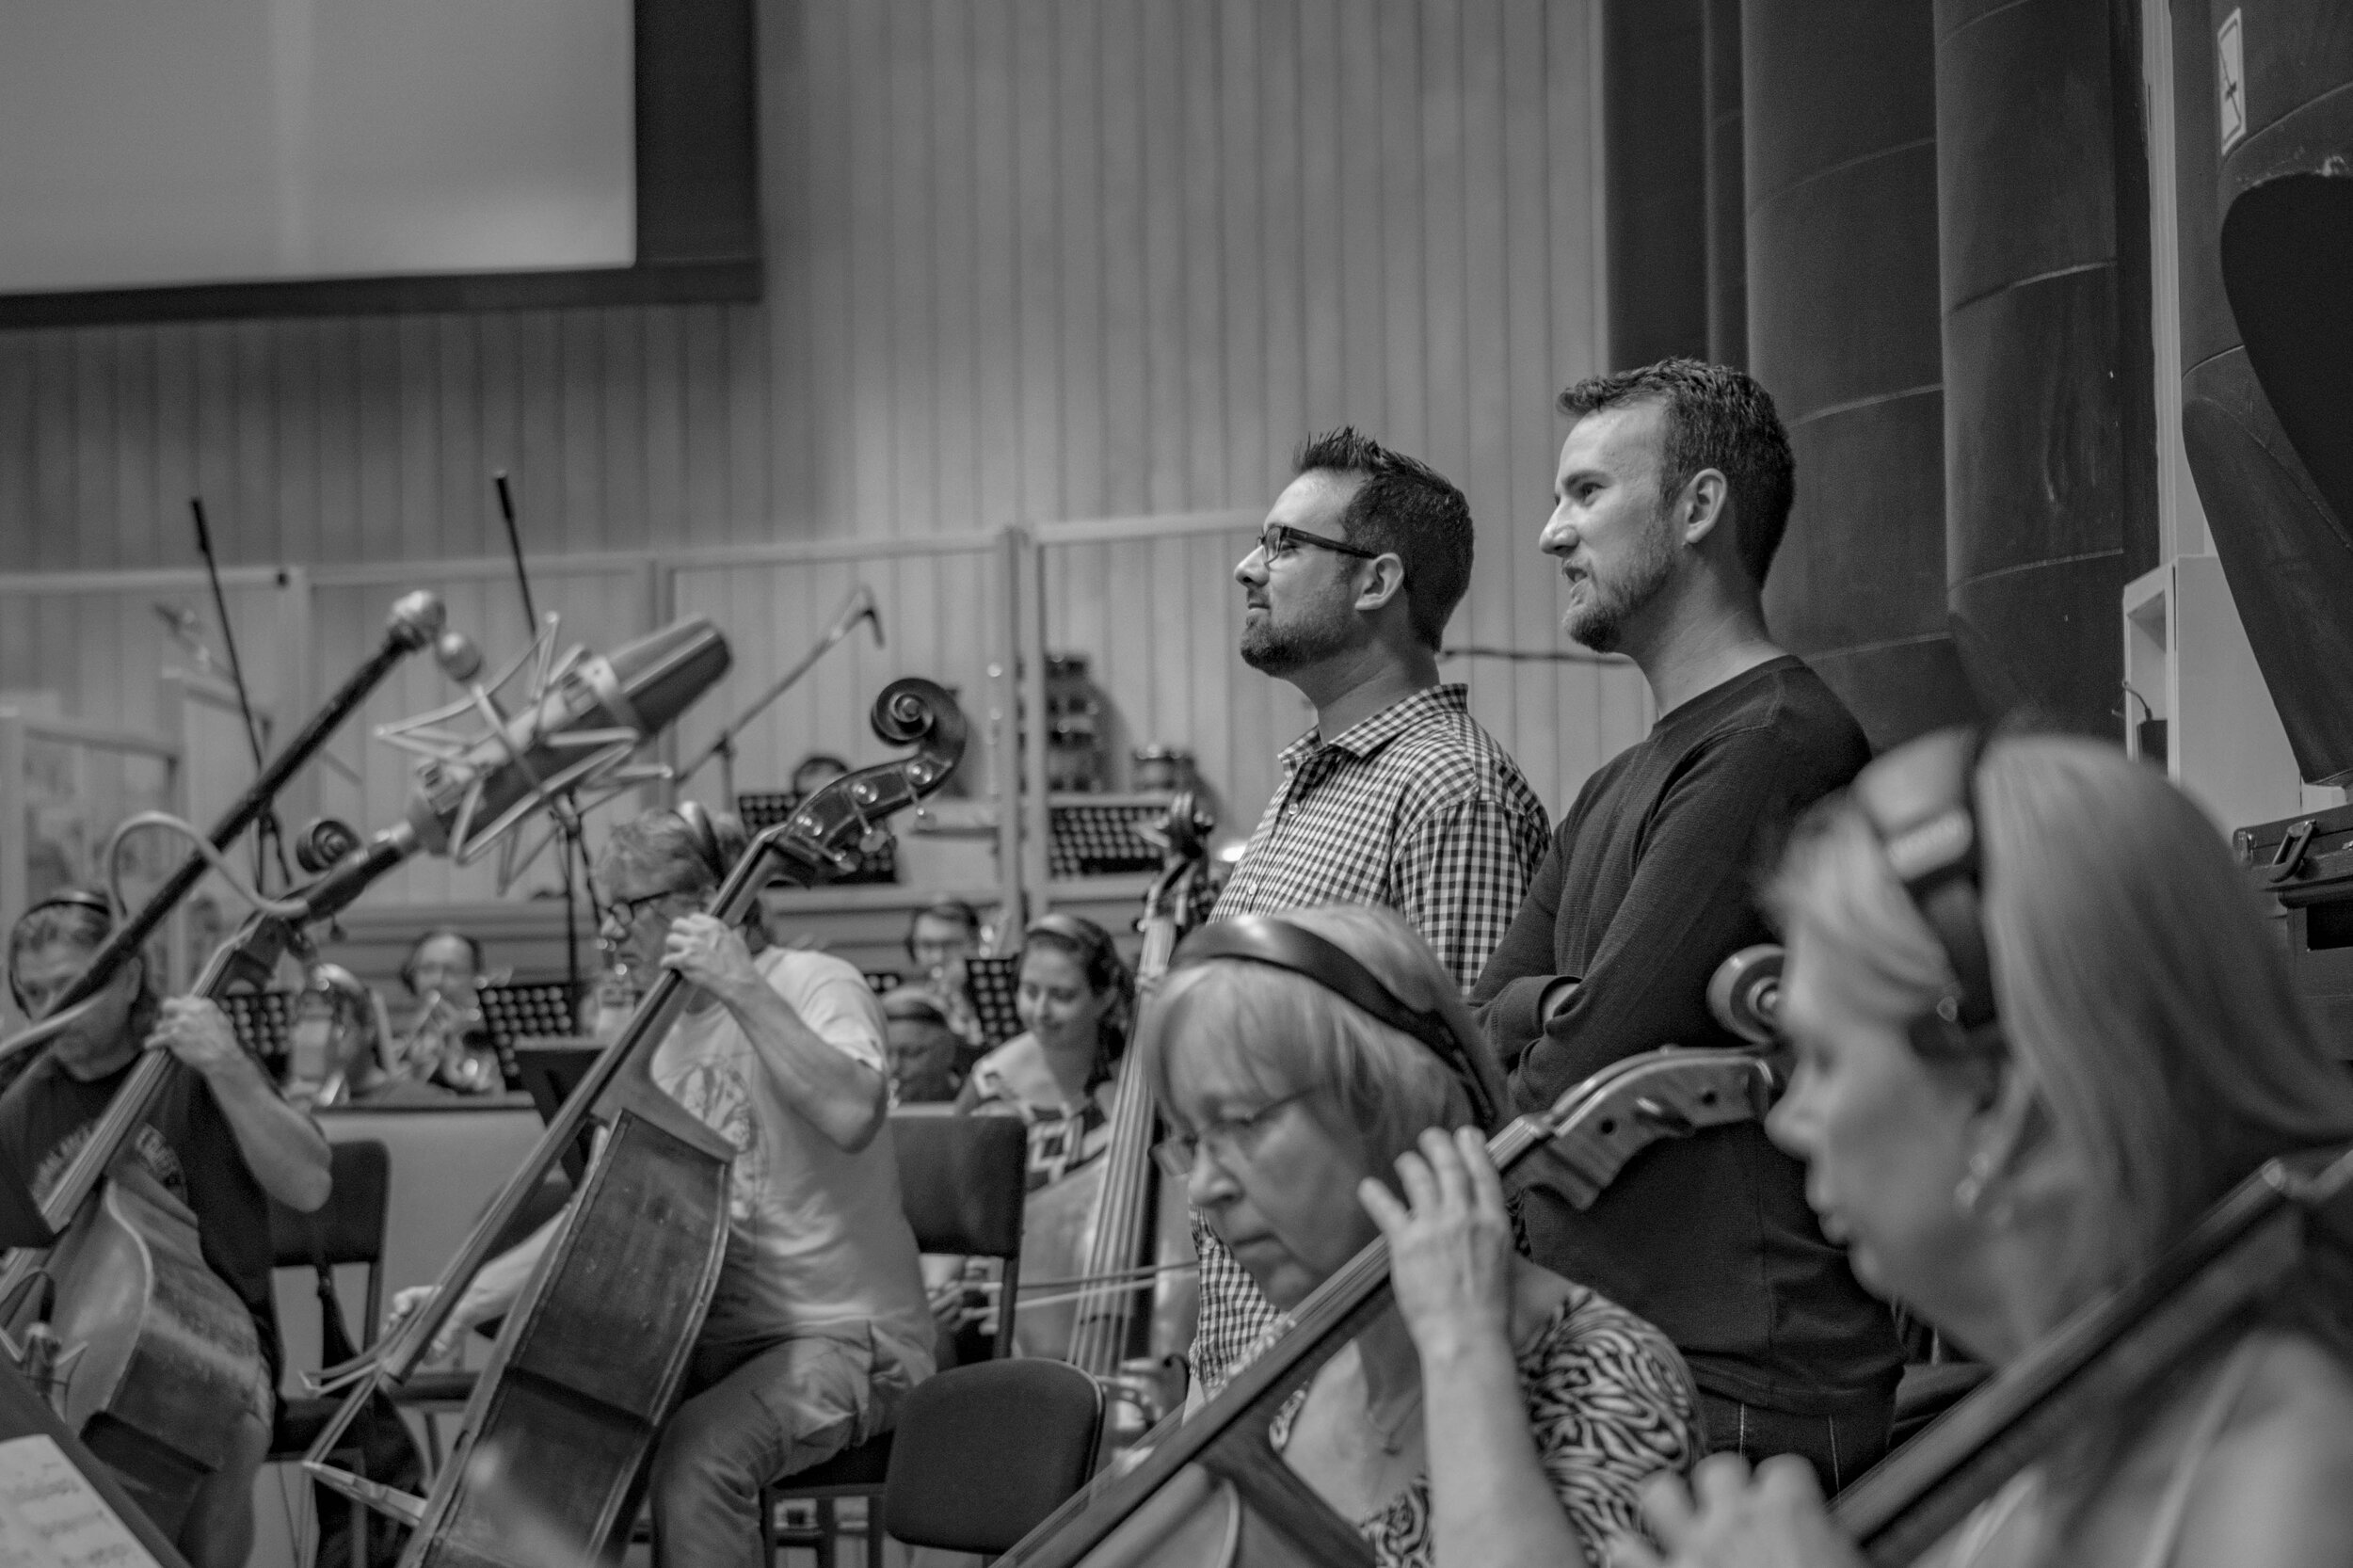 Listening to the Prague Orchestra perform the score for HERO. - August, 2017